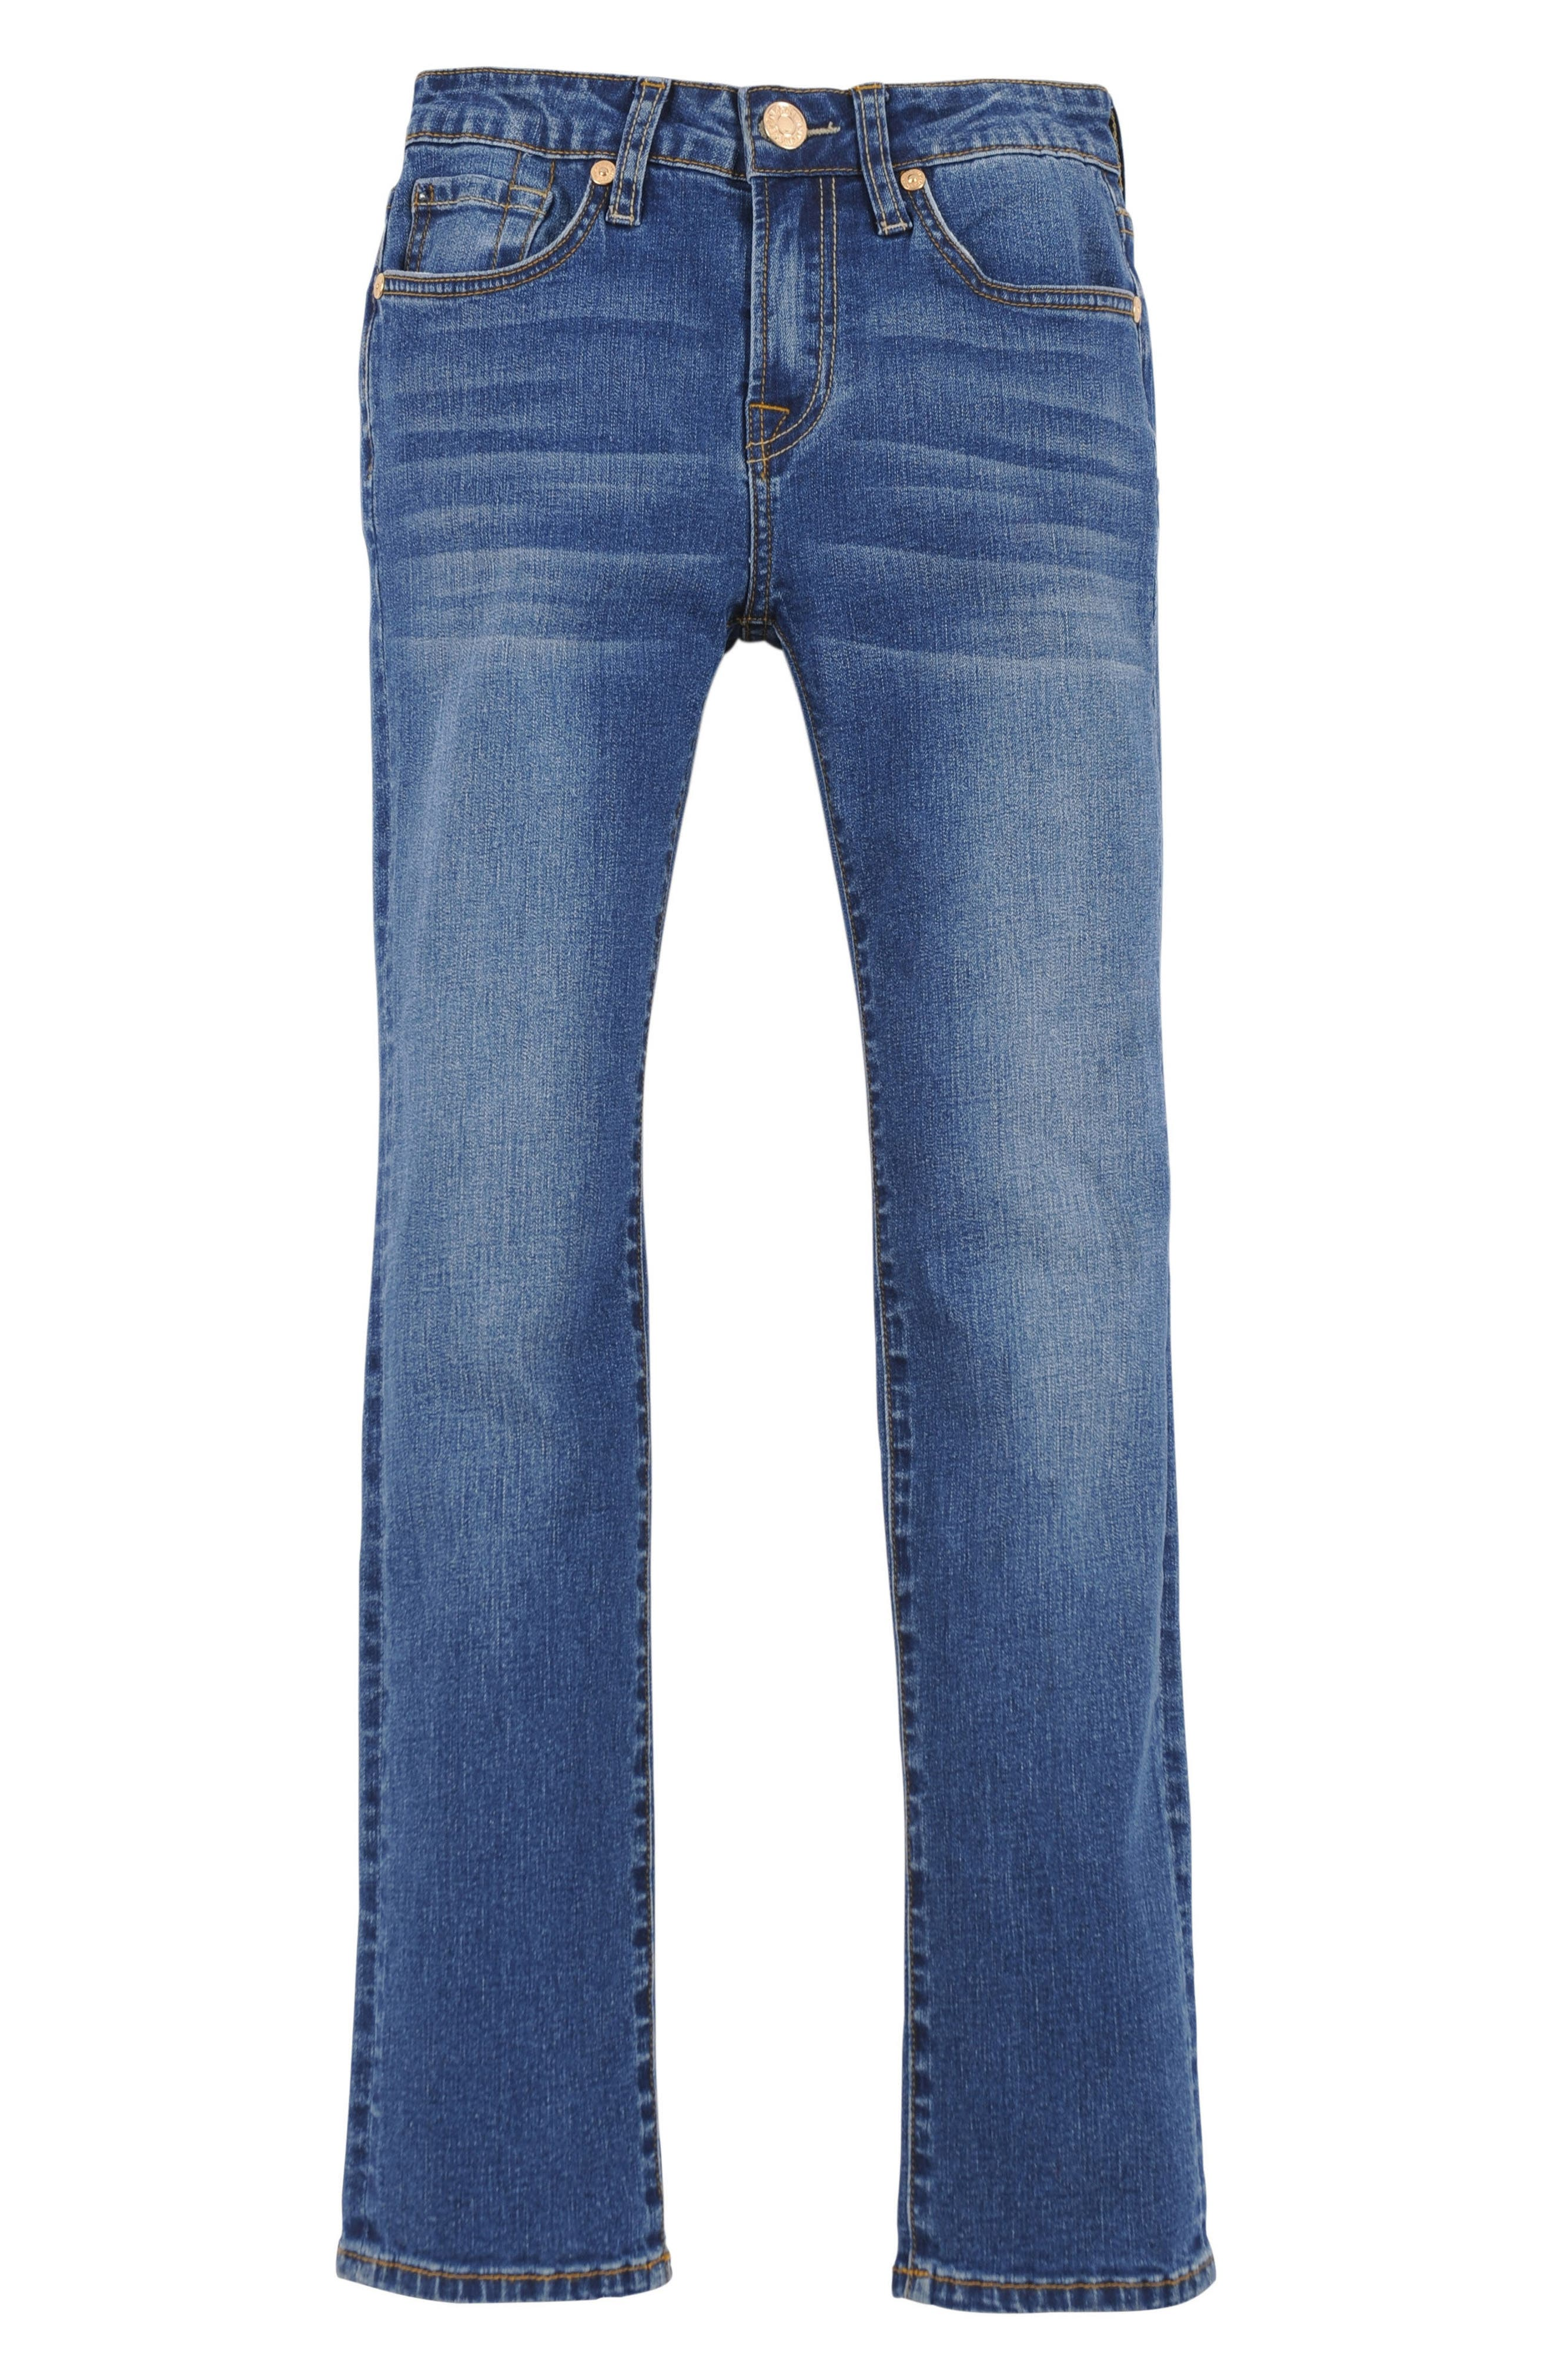 Slimmy Foolproof Slim Fit Jeans,                         Main,                         color, Bristol